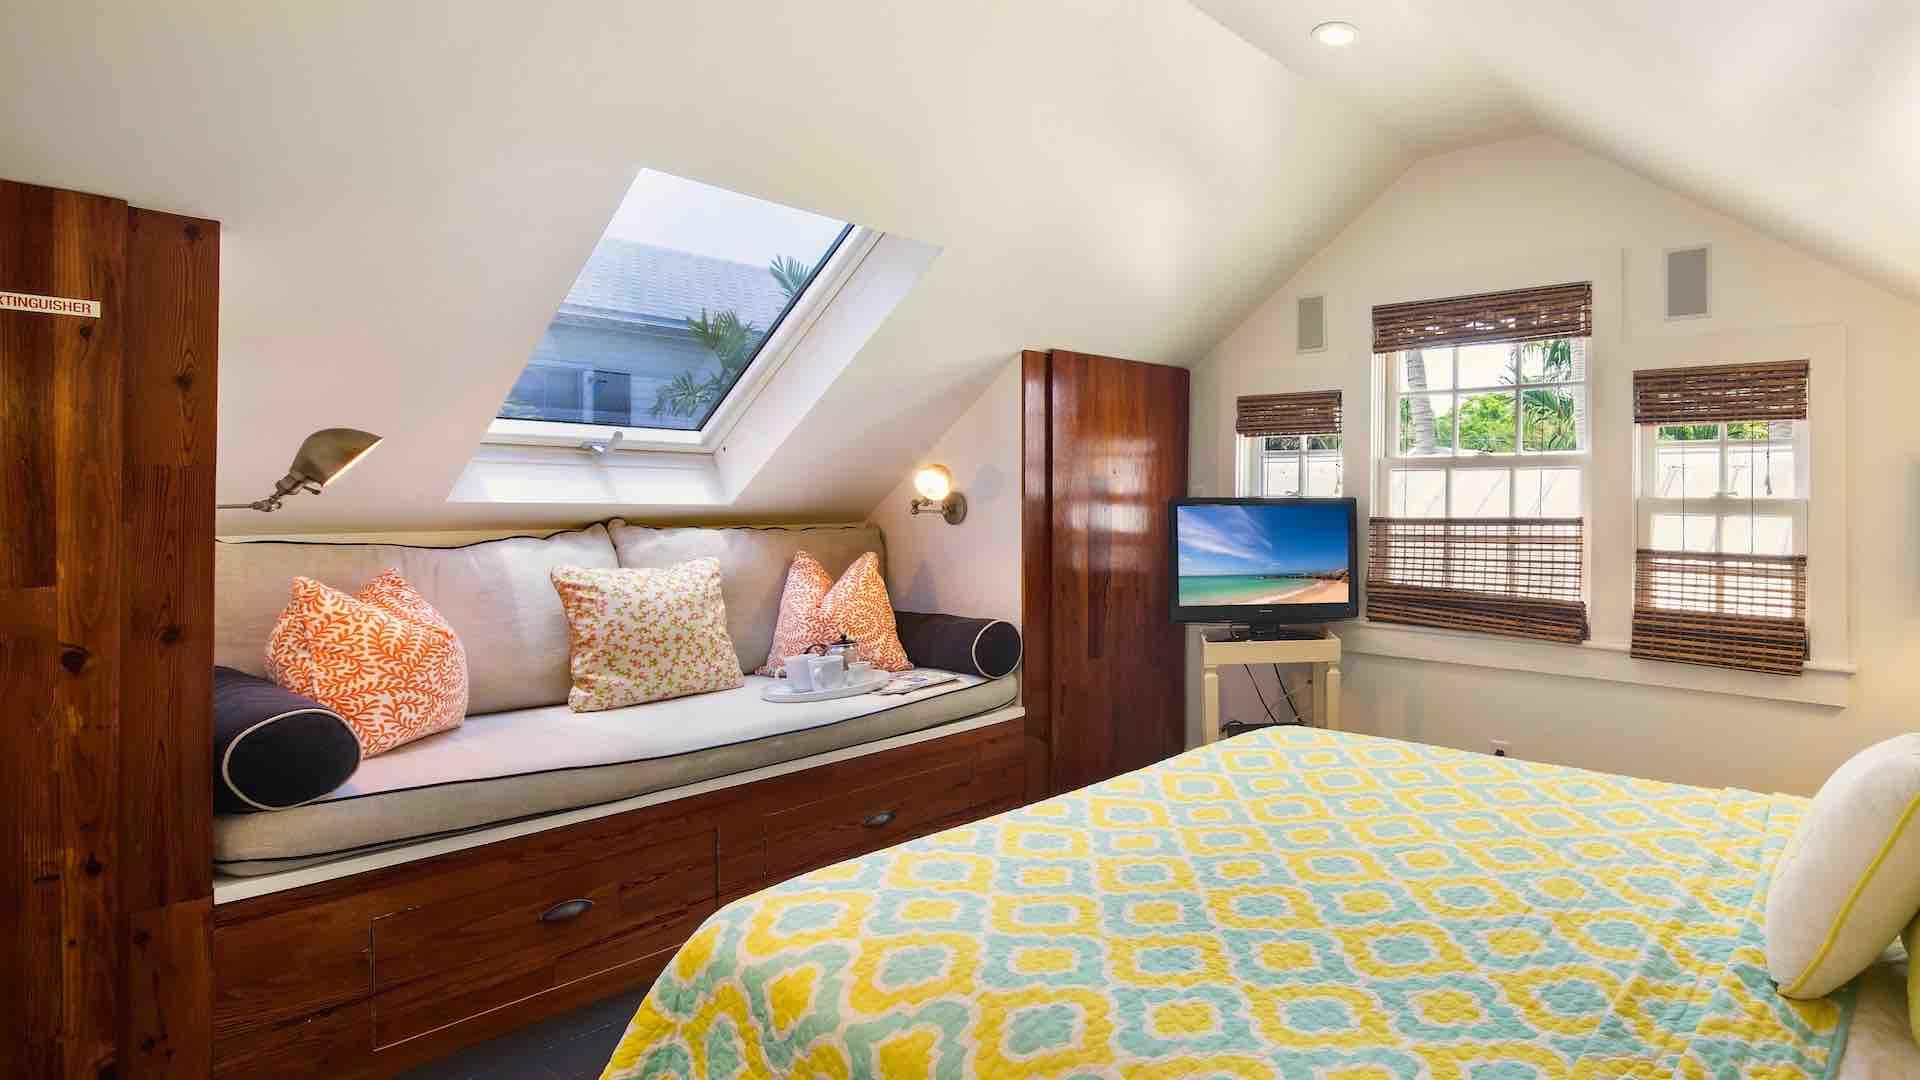 The fourth bedroom also has a flat screen TV and opening skylight...